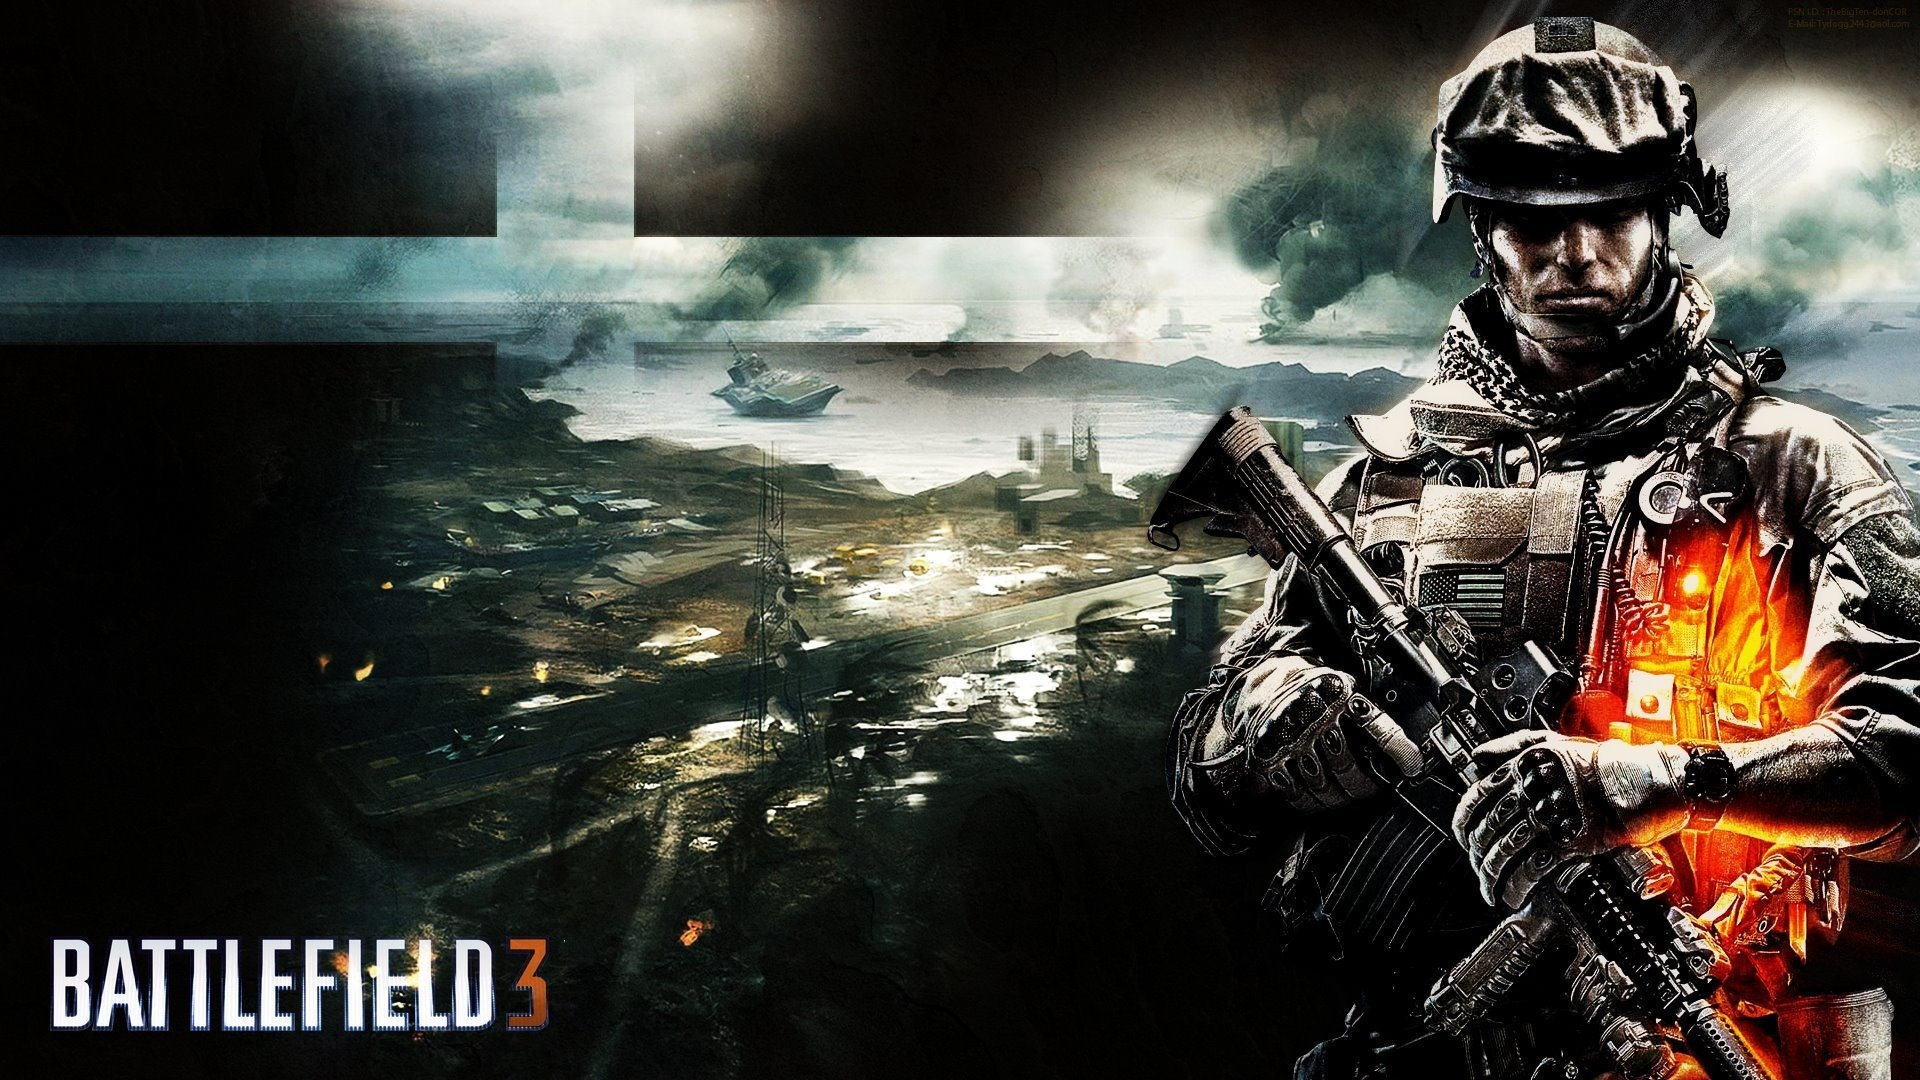 Wallpaper battlefield 3 wide 1920x1080 full hd picture image download this wallpaper voltagebd Image collections